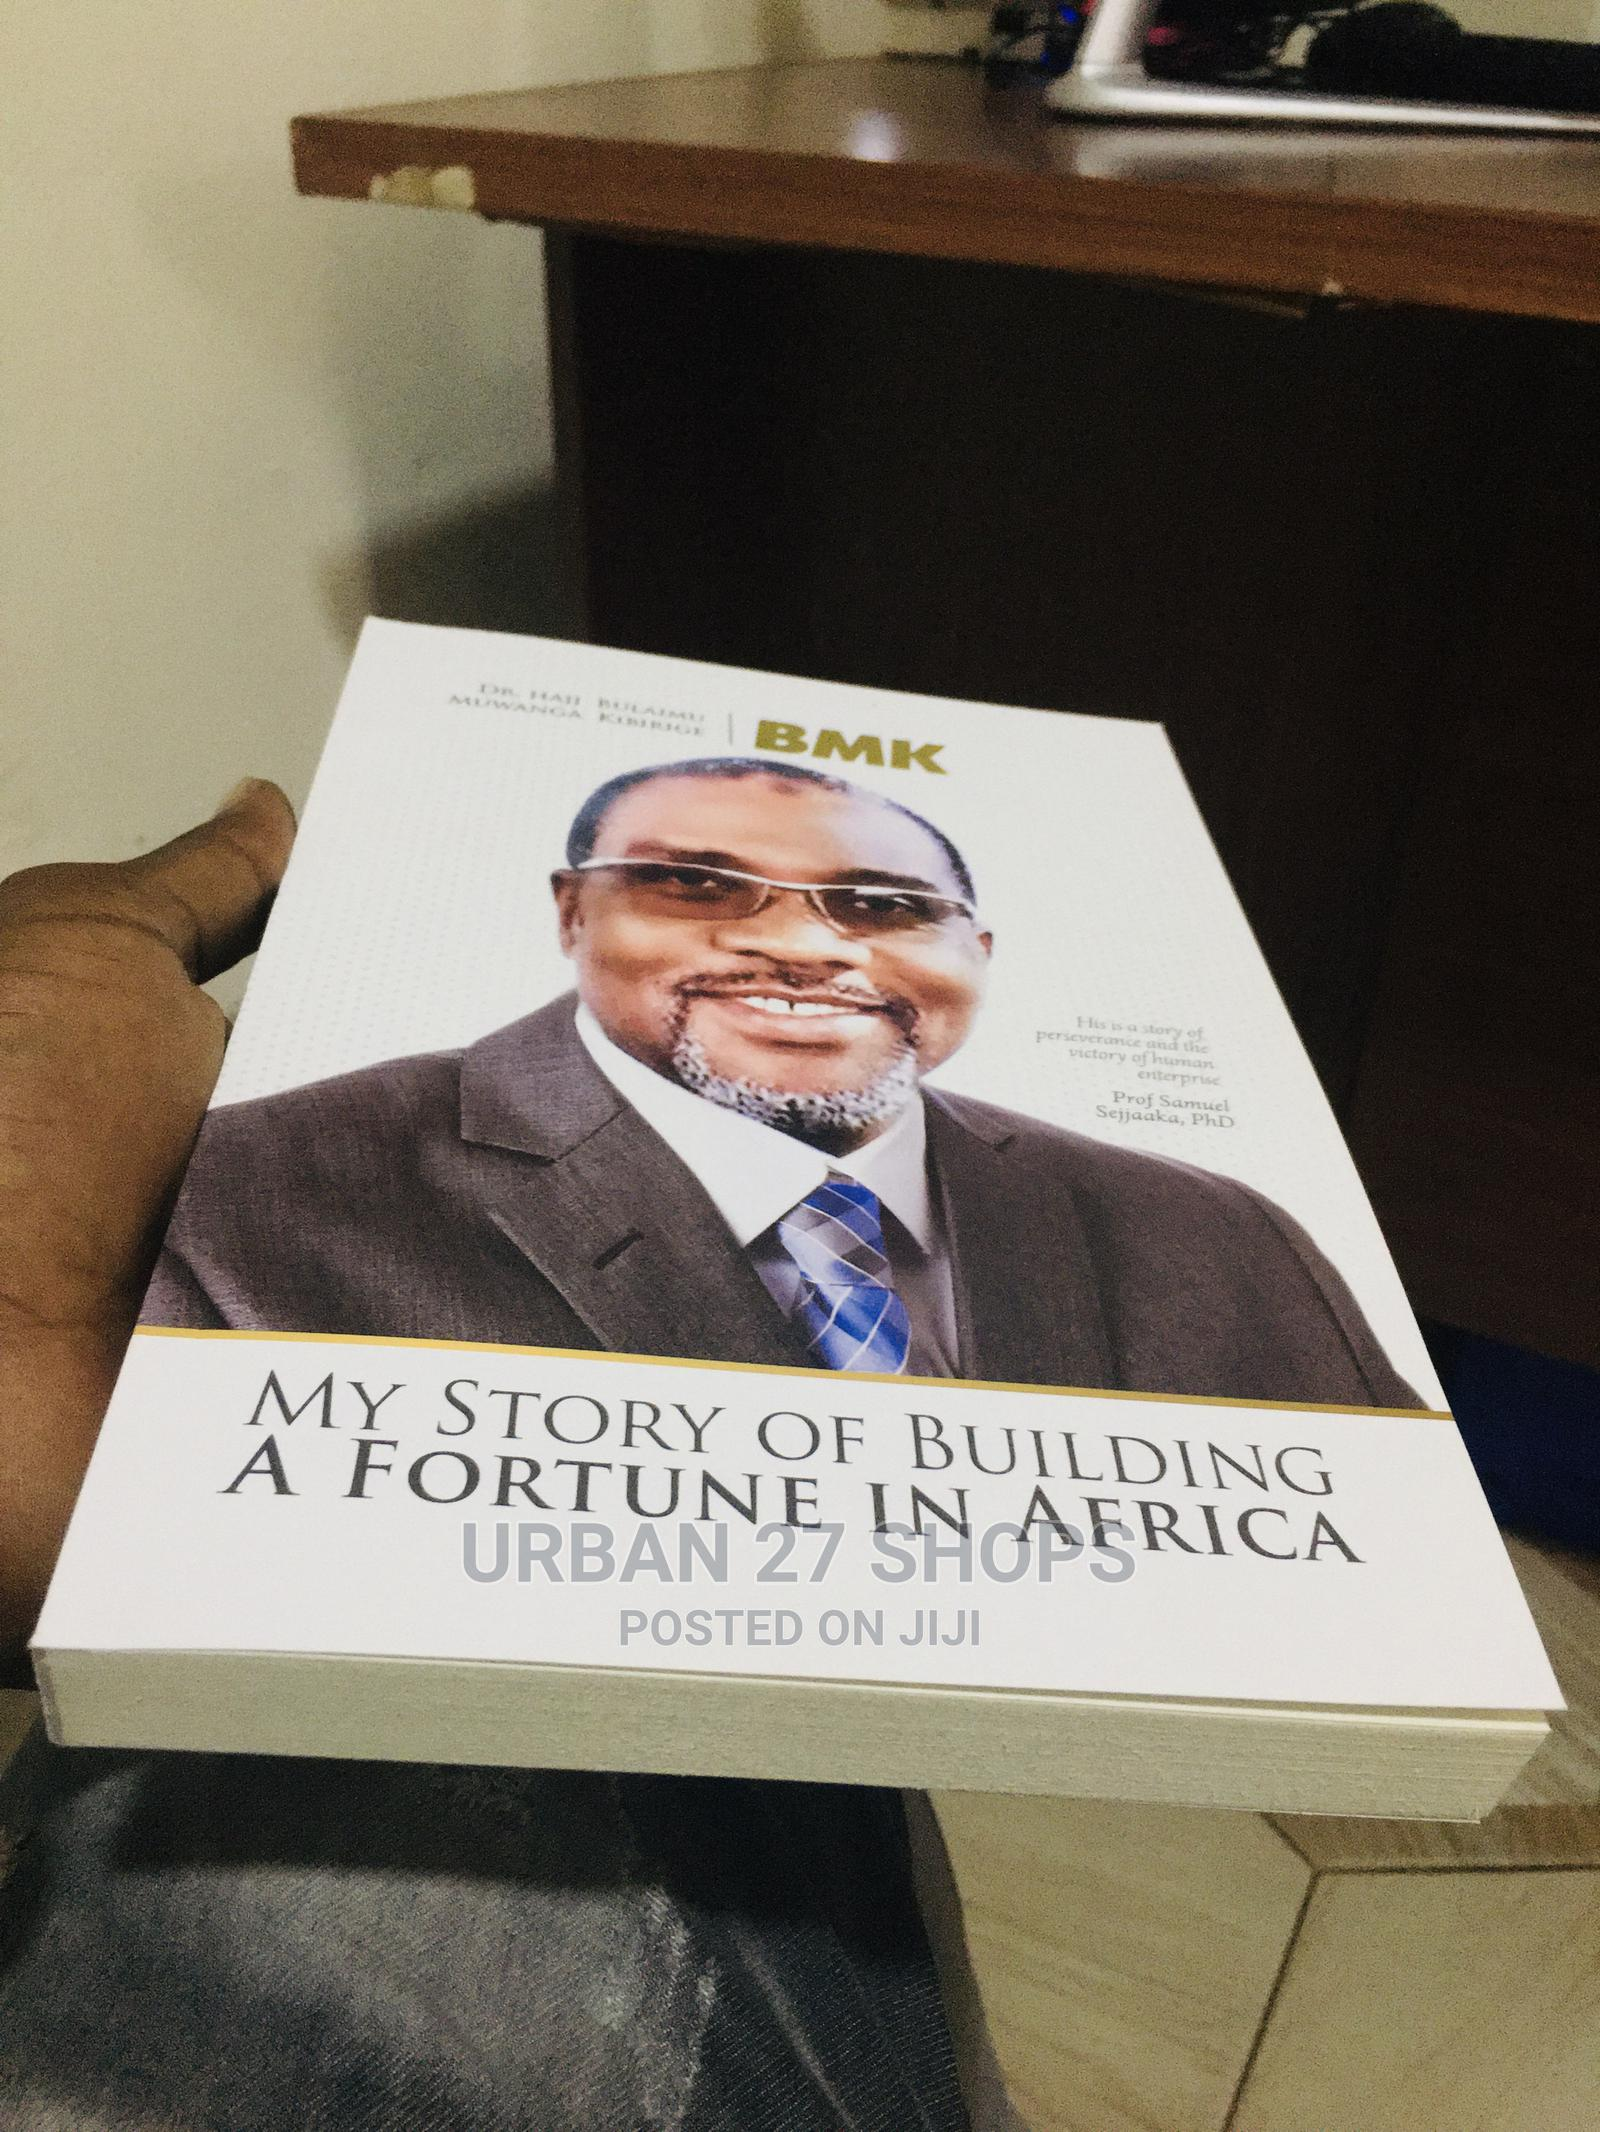 My Story of Building a Fortune in Africa